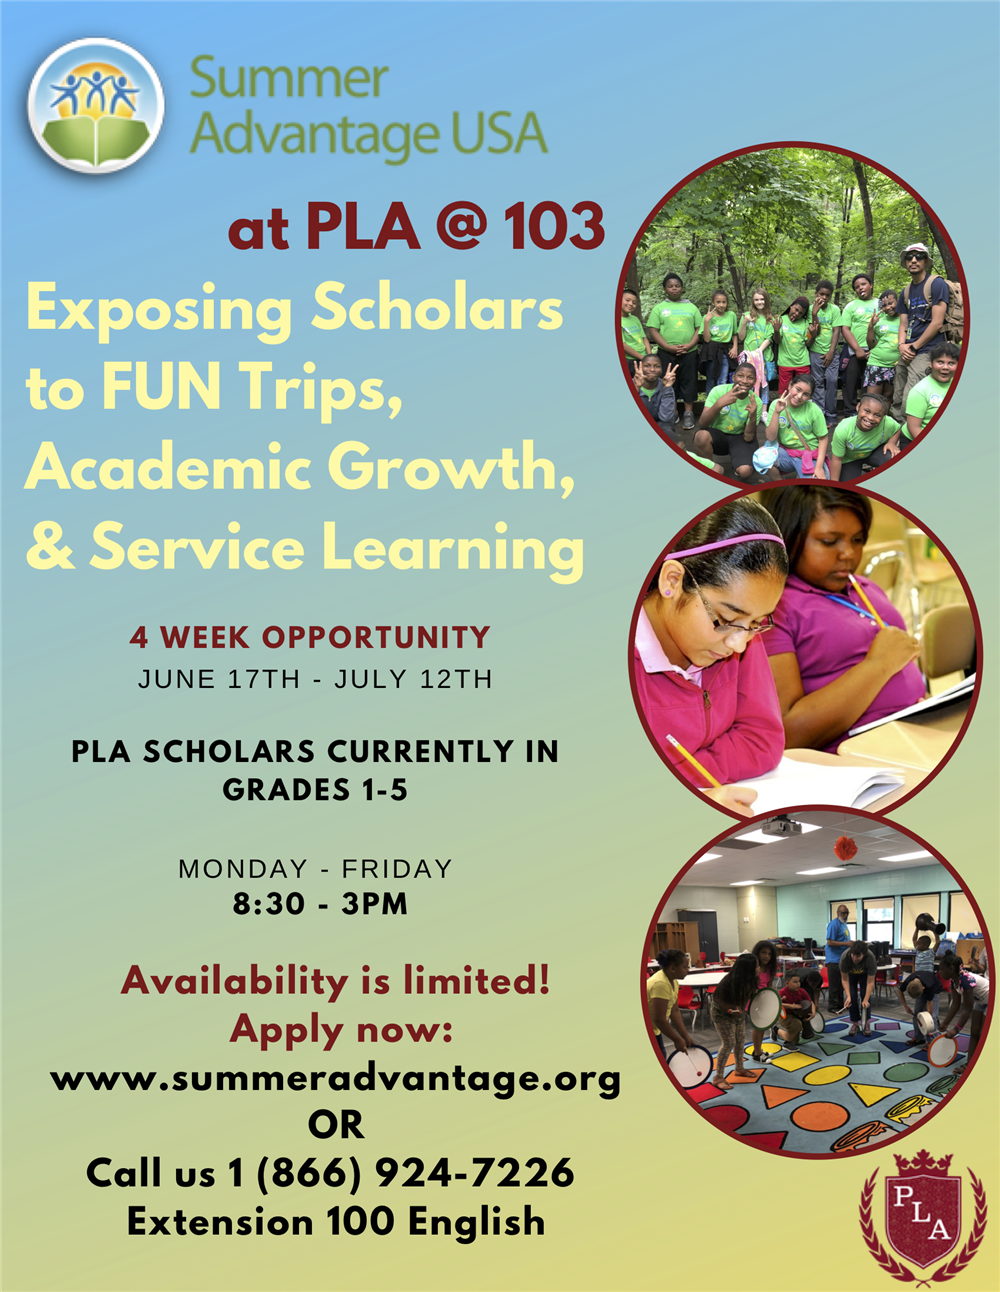 PLA@103 Summer Advantage Program